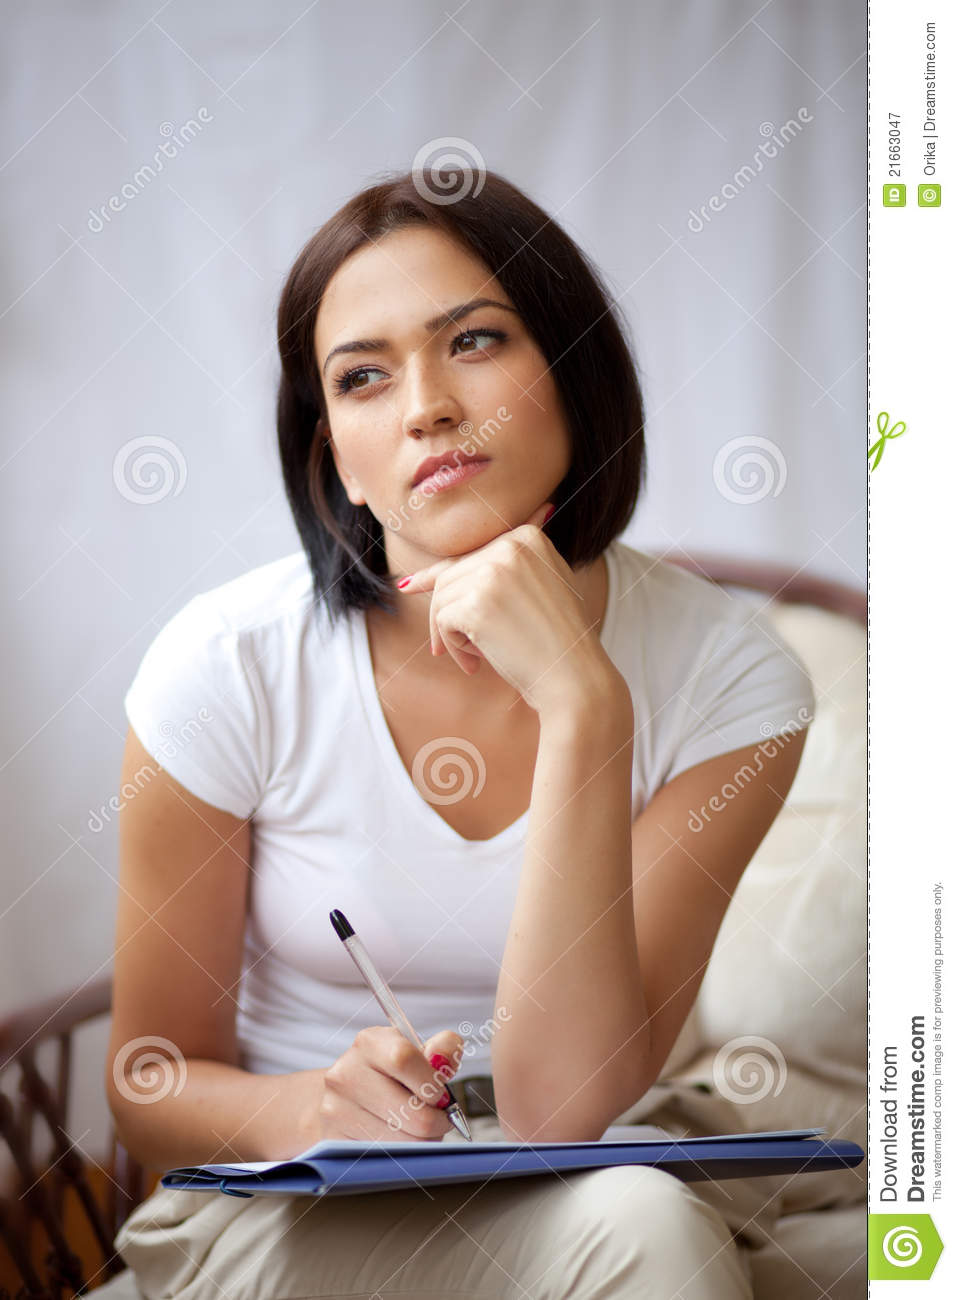 Woman writing on notepad to do list at home